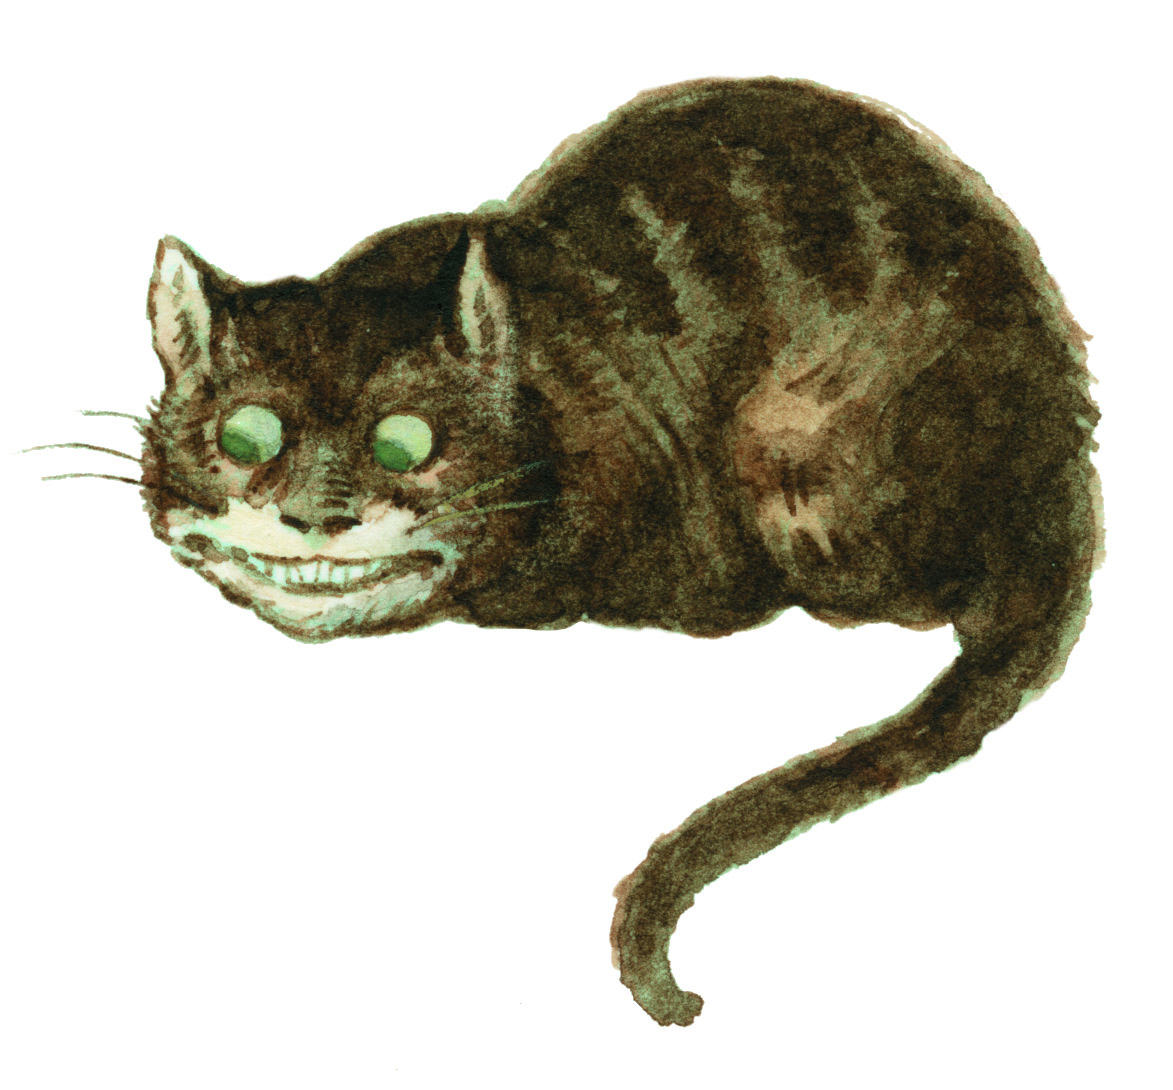 Alice in Wonderland's Cheshire Cat